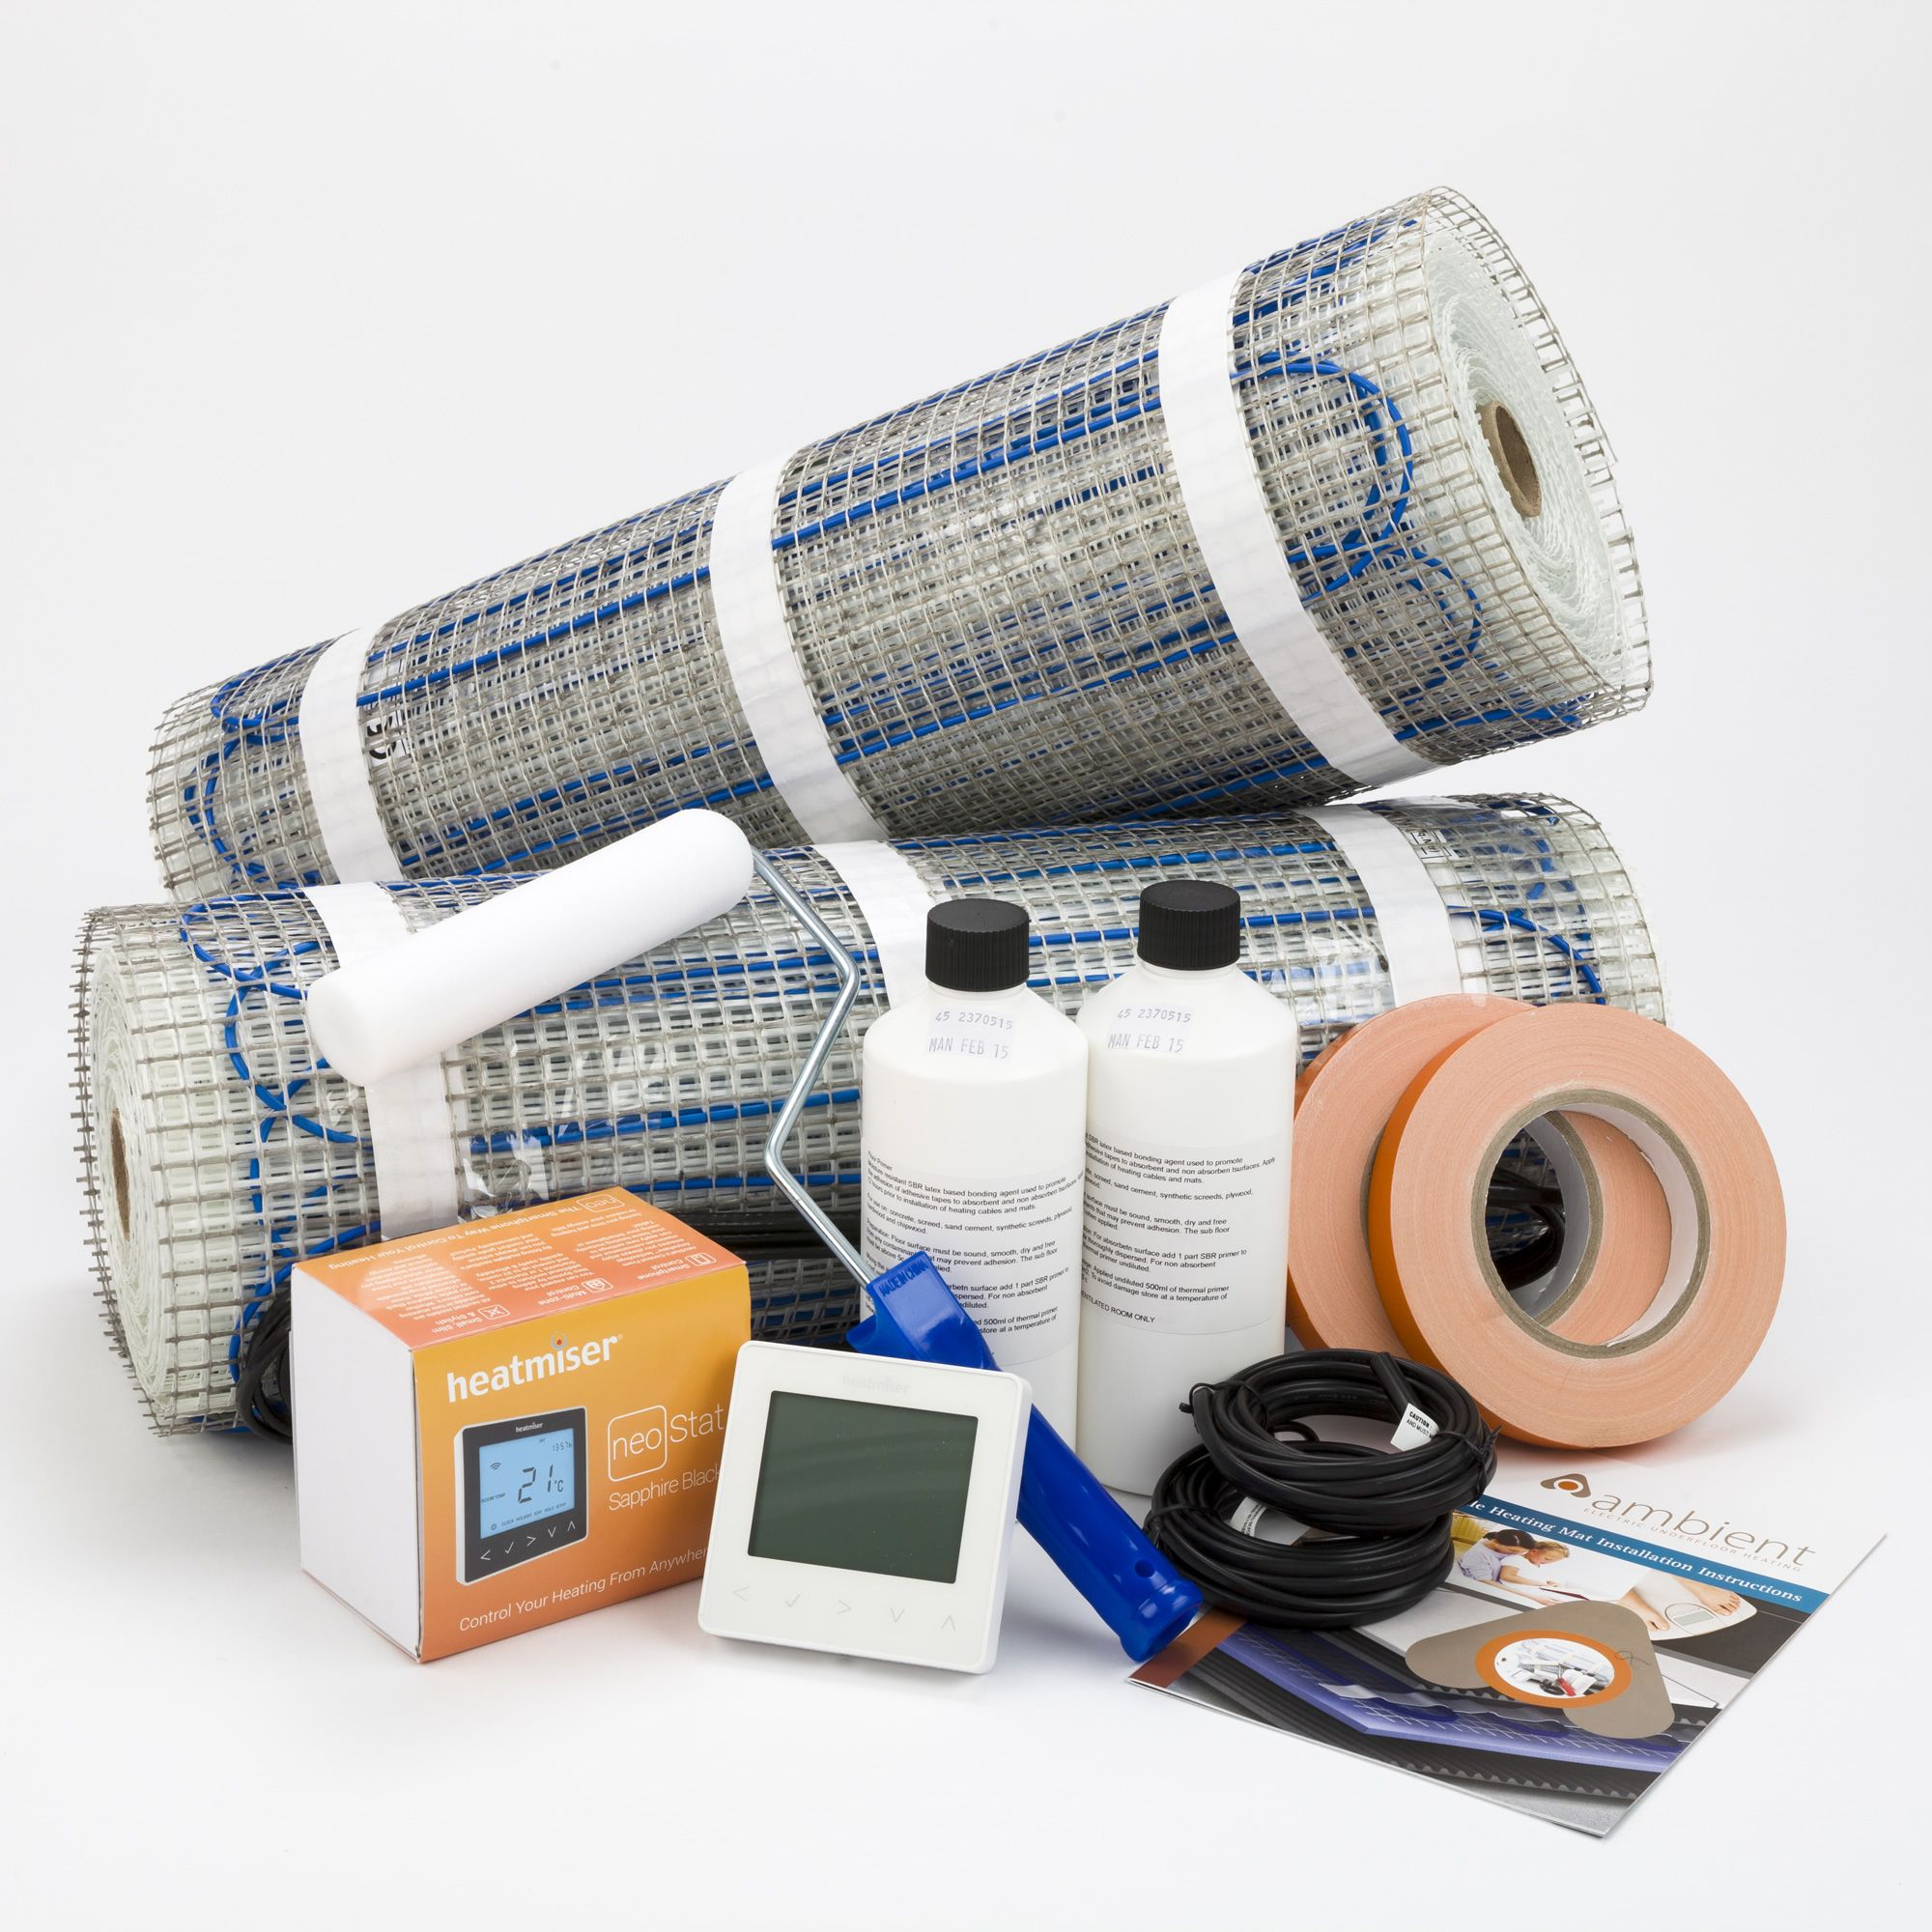 200w Sticky Mat Range Large Floor Heating Systems Electric Underfloor Heating Heating Systems